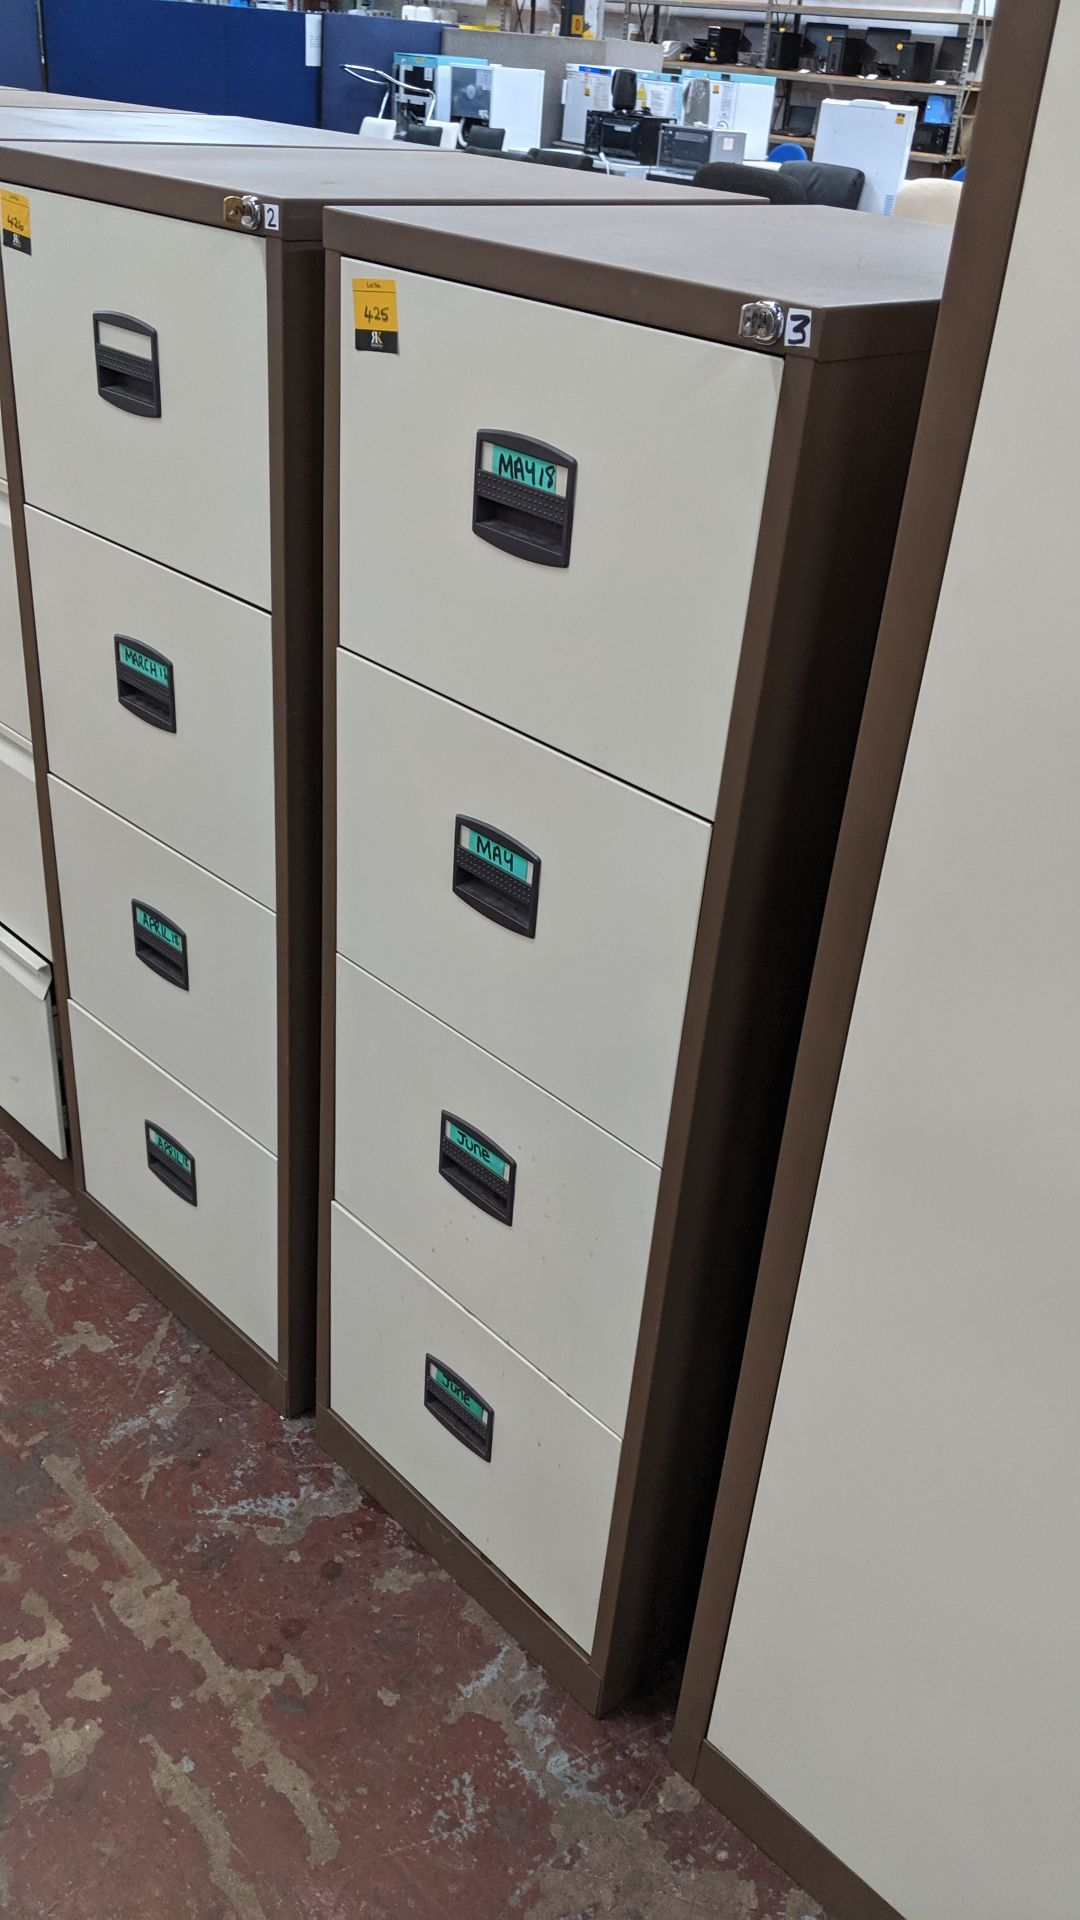 Lot 425 - Brown metal 4-drawer filing cabinet with key. This is one of a large number of lots used/owned by